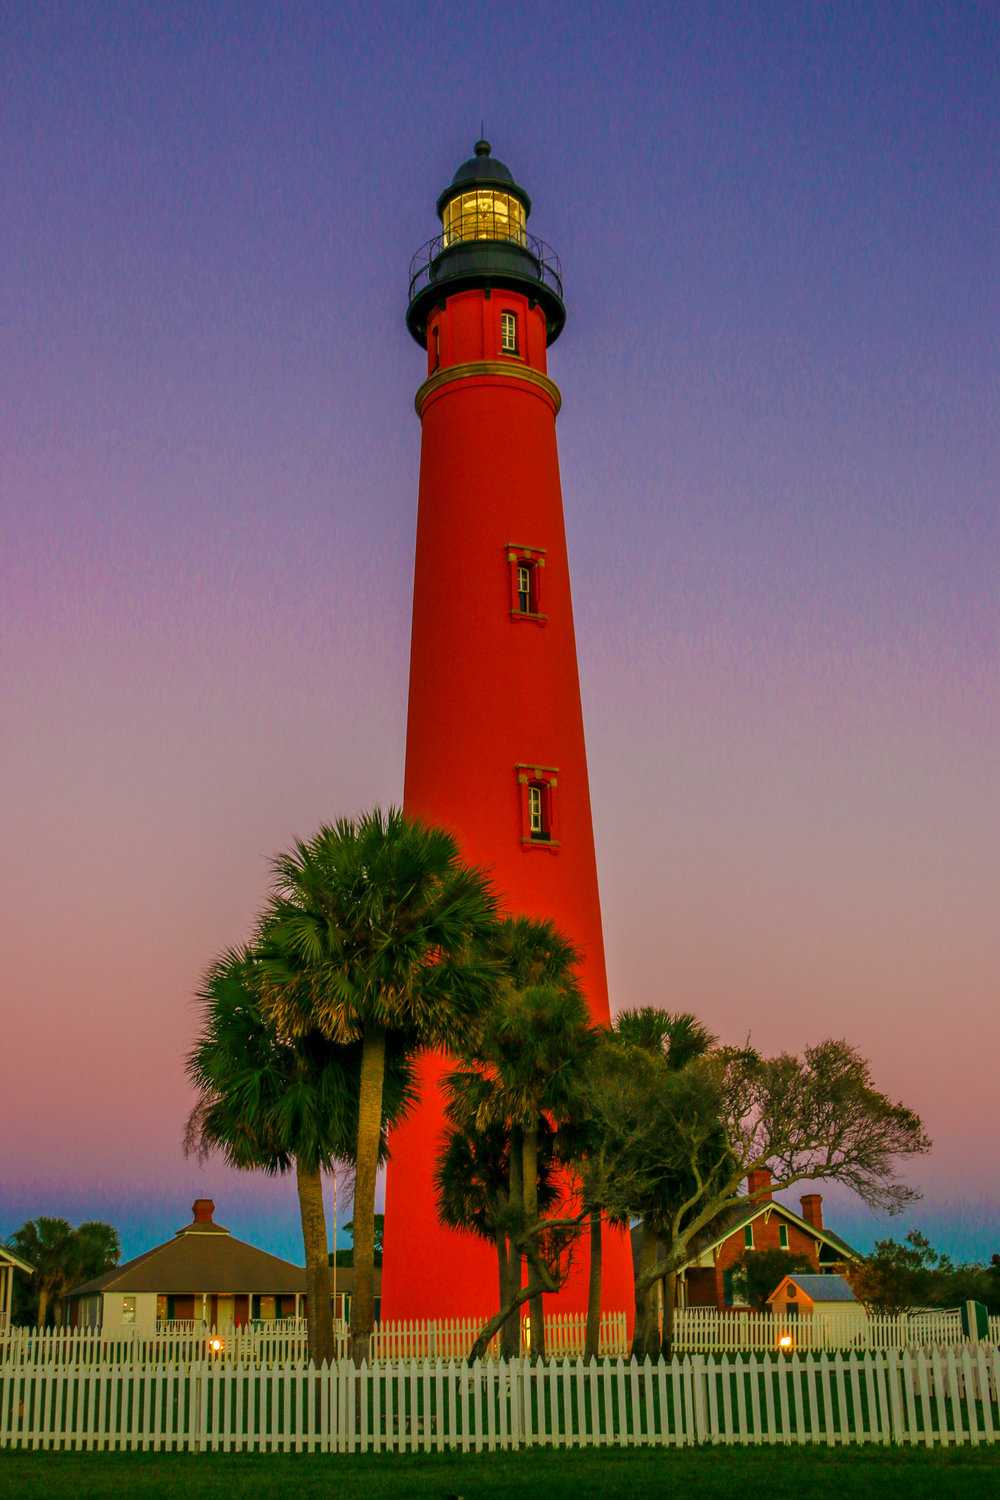 Ponce Inlet Lighthouse at Dusk